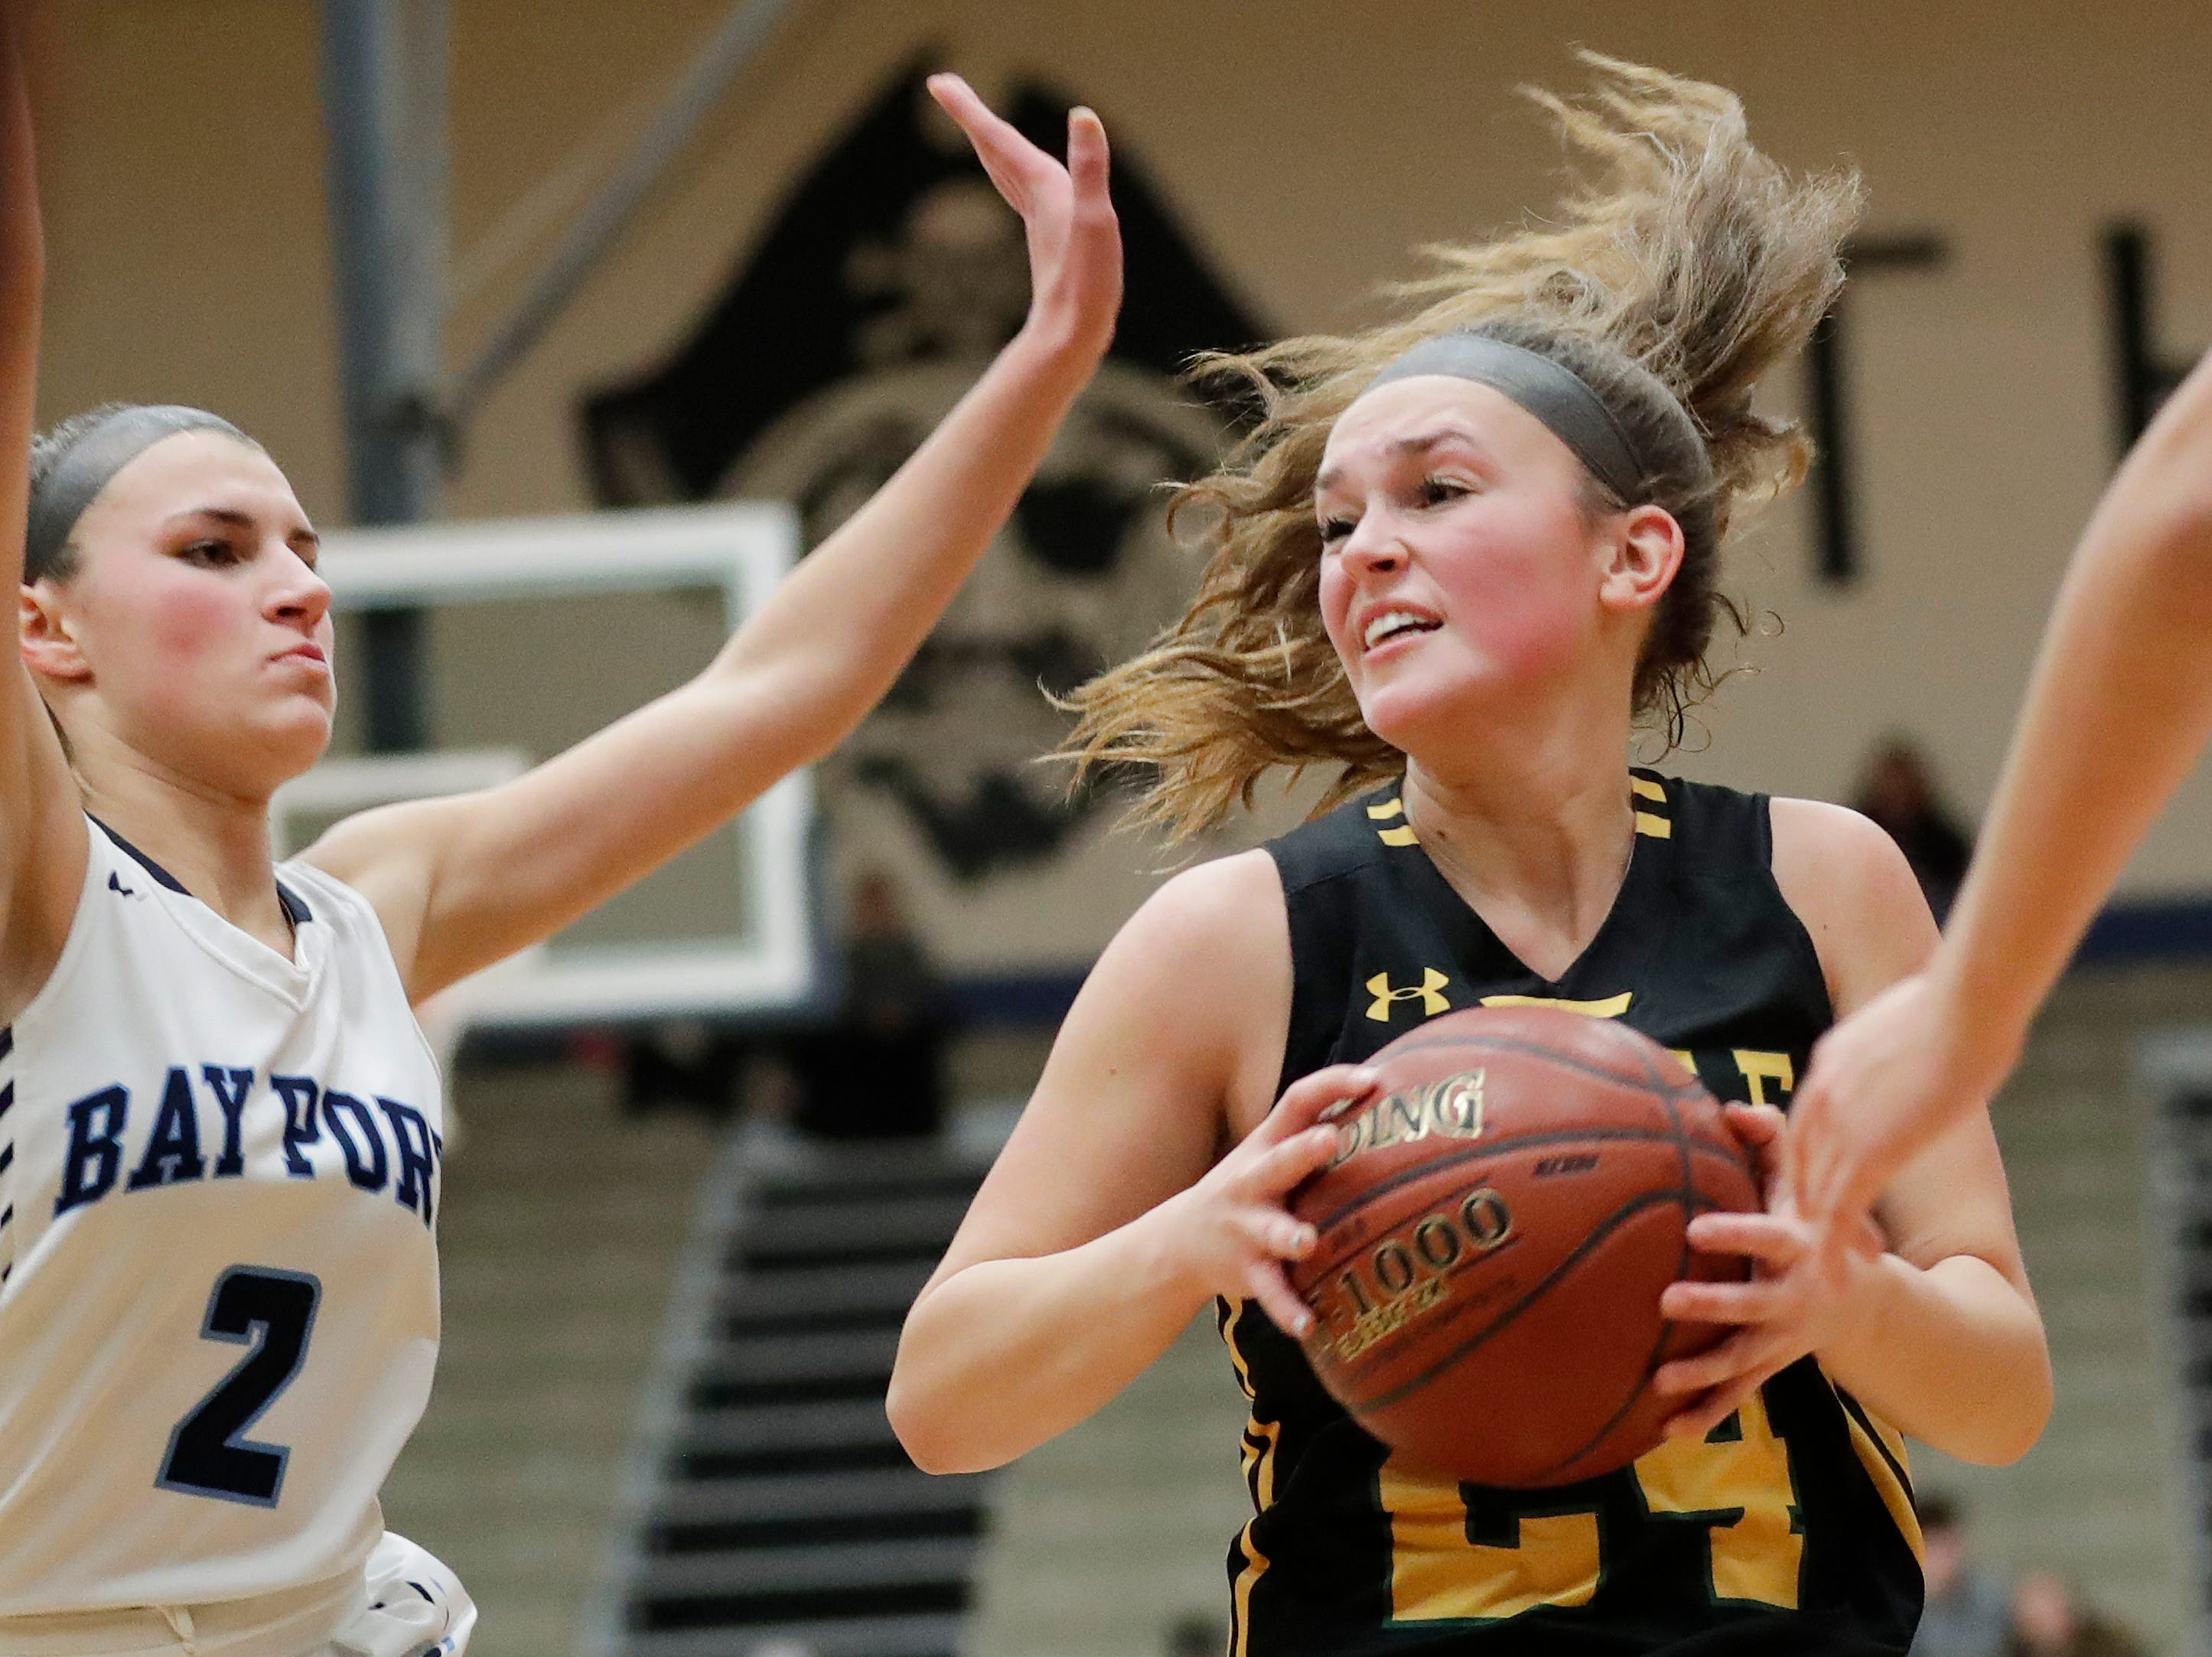 Green Bay Preble's Ella Bialkowski (24) dribbles past Bay Port's Grace Krause (2) in a FRCC girls basketball game at Bay Port high school on Friday, February 8, 2019 in Suamico, Wis.